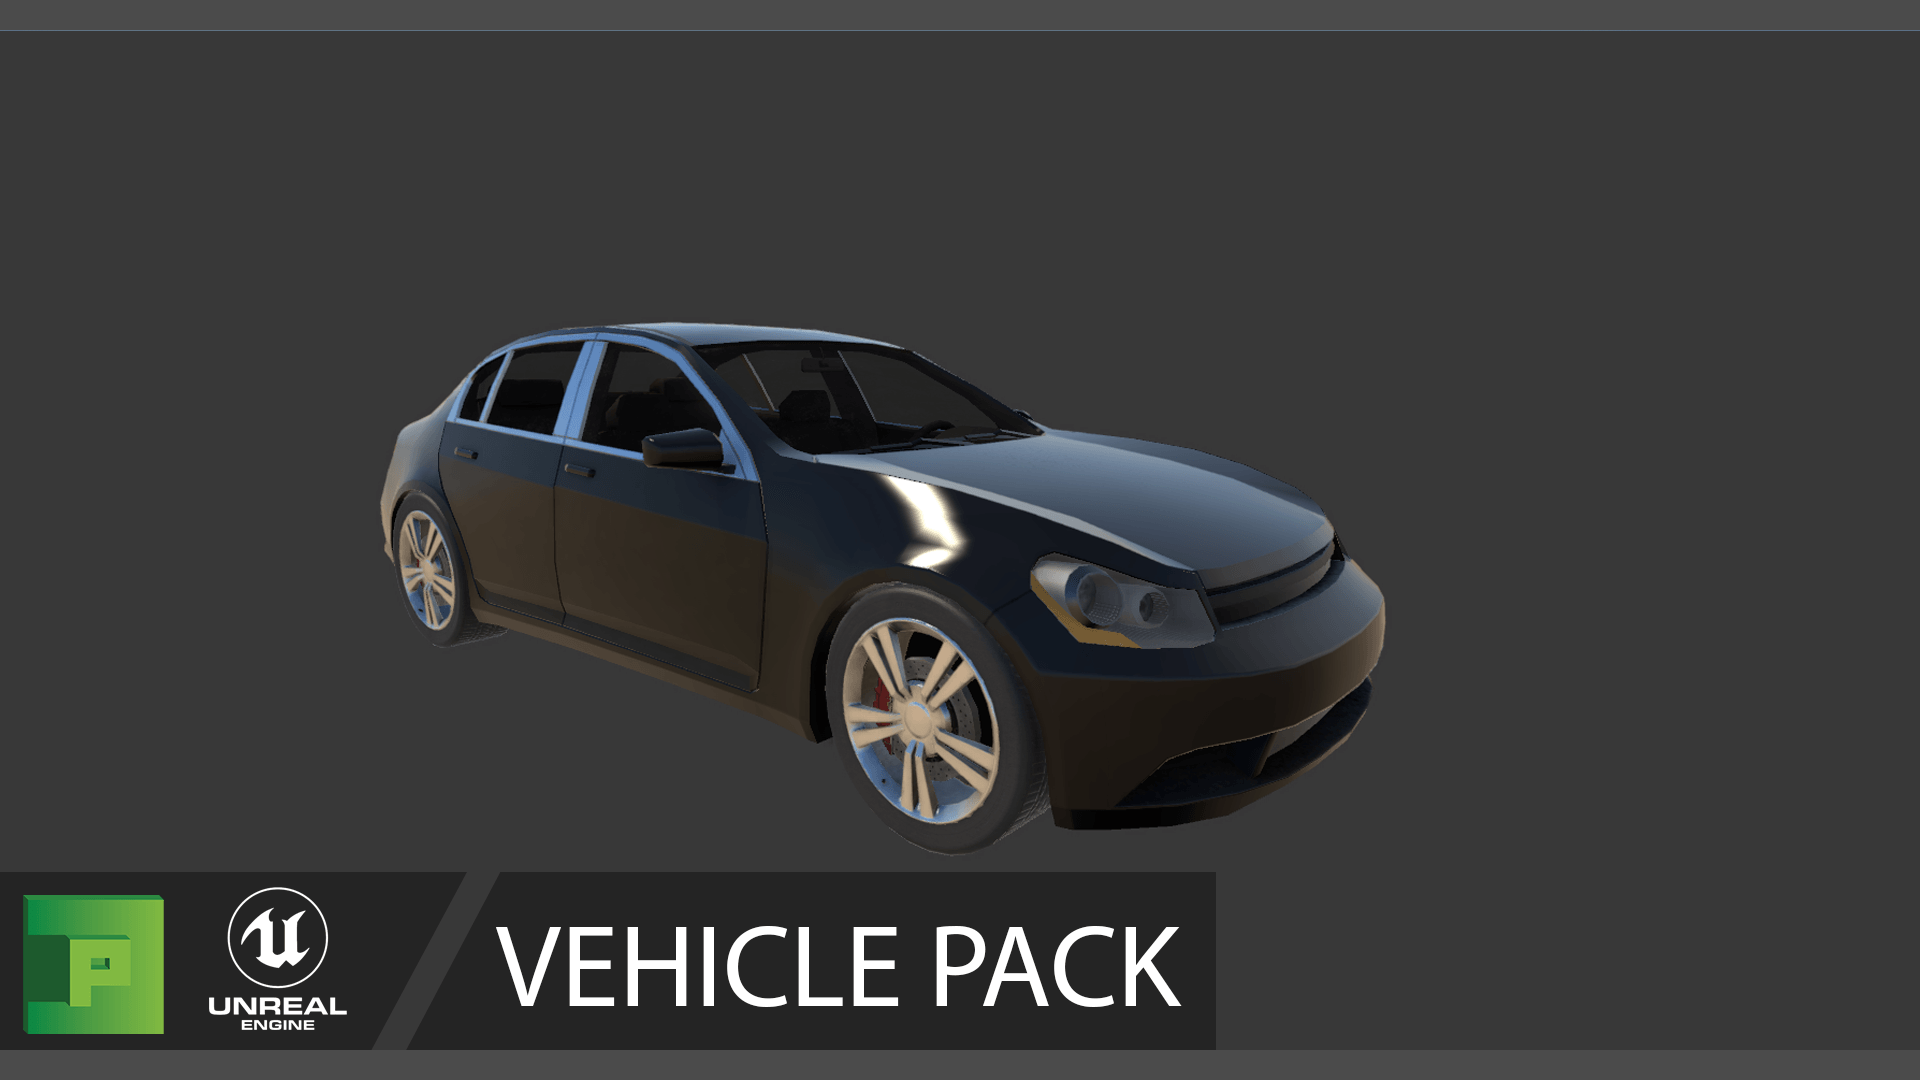 VehiclePack_04